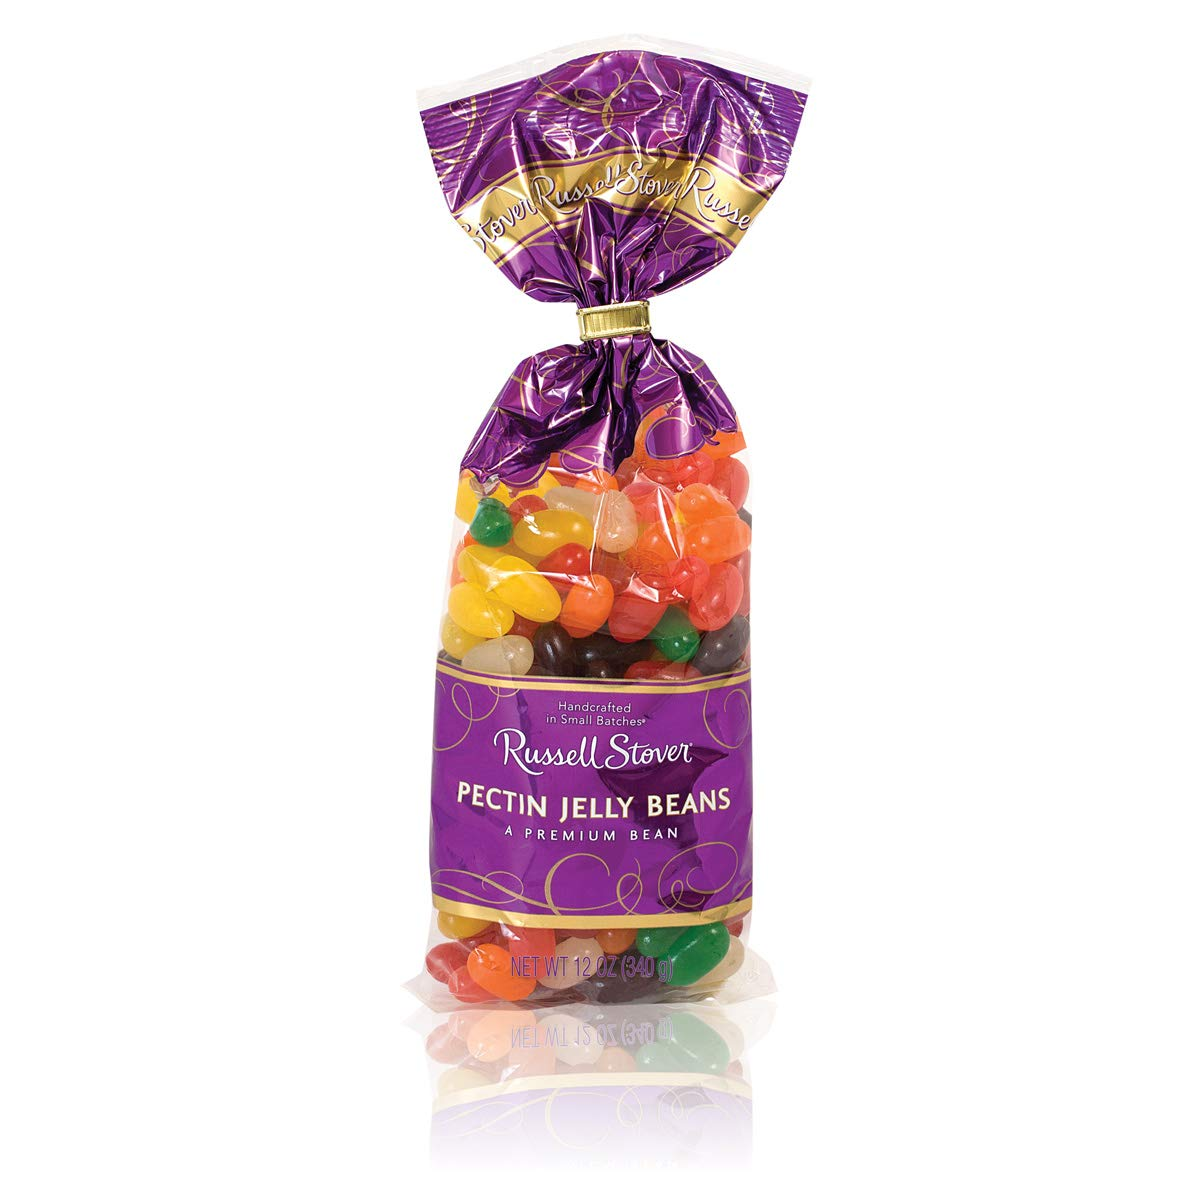 Russell Stover Pectin Flavored Jelly Beans Candy, Assorted Flavors, Pack of 4, 12 Ounce Bags (48 Ounces Total) by Russell Stover